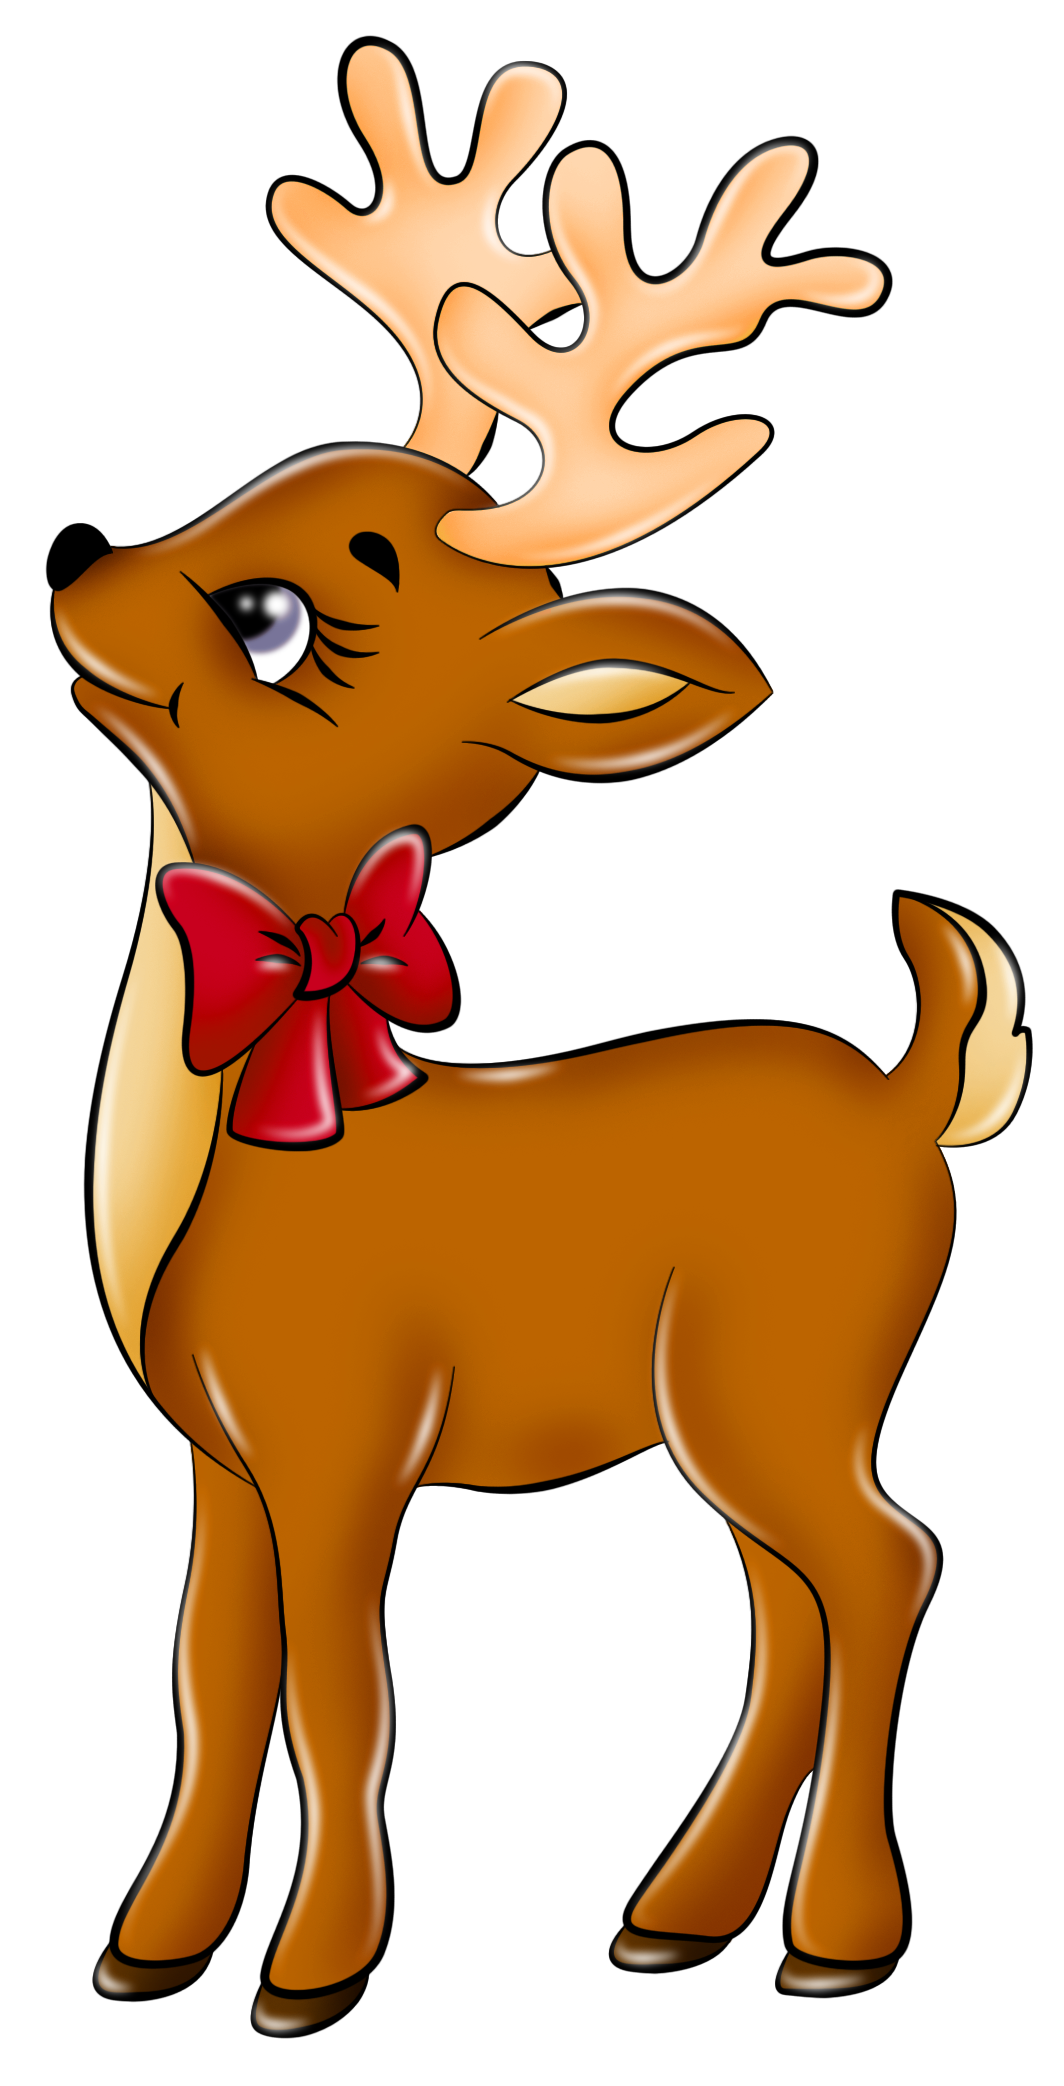 Reindeer clipart free download clip art on.